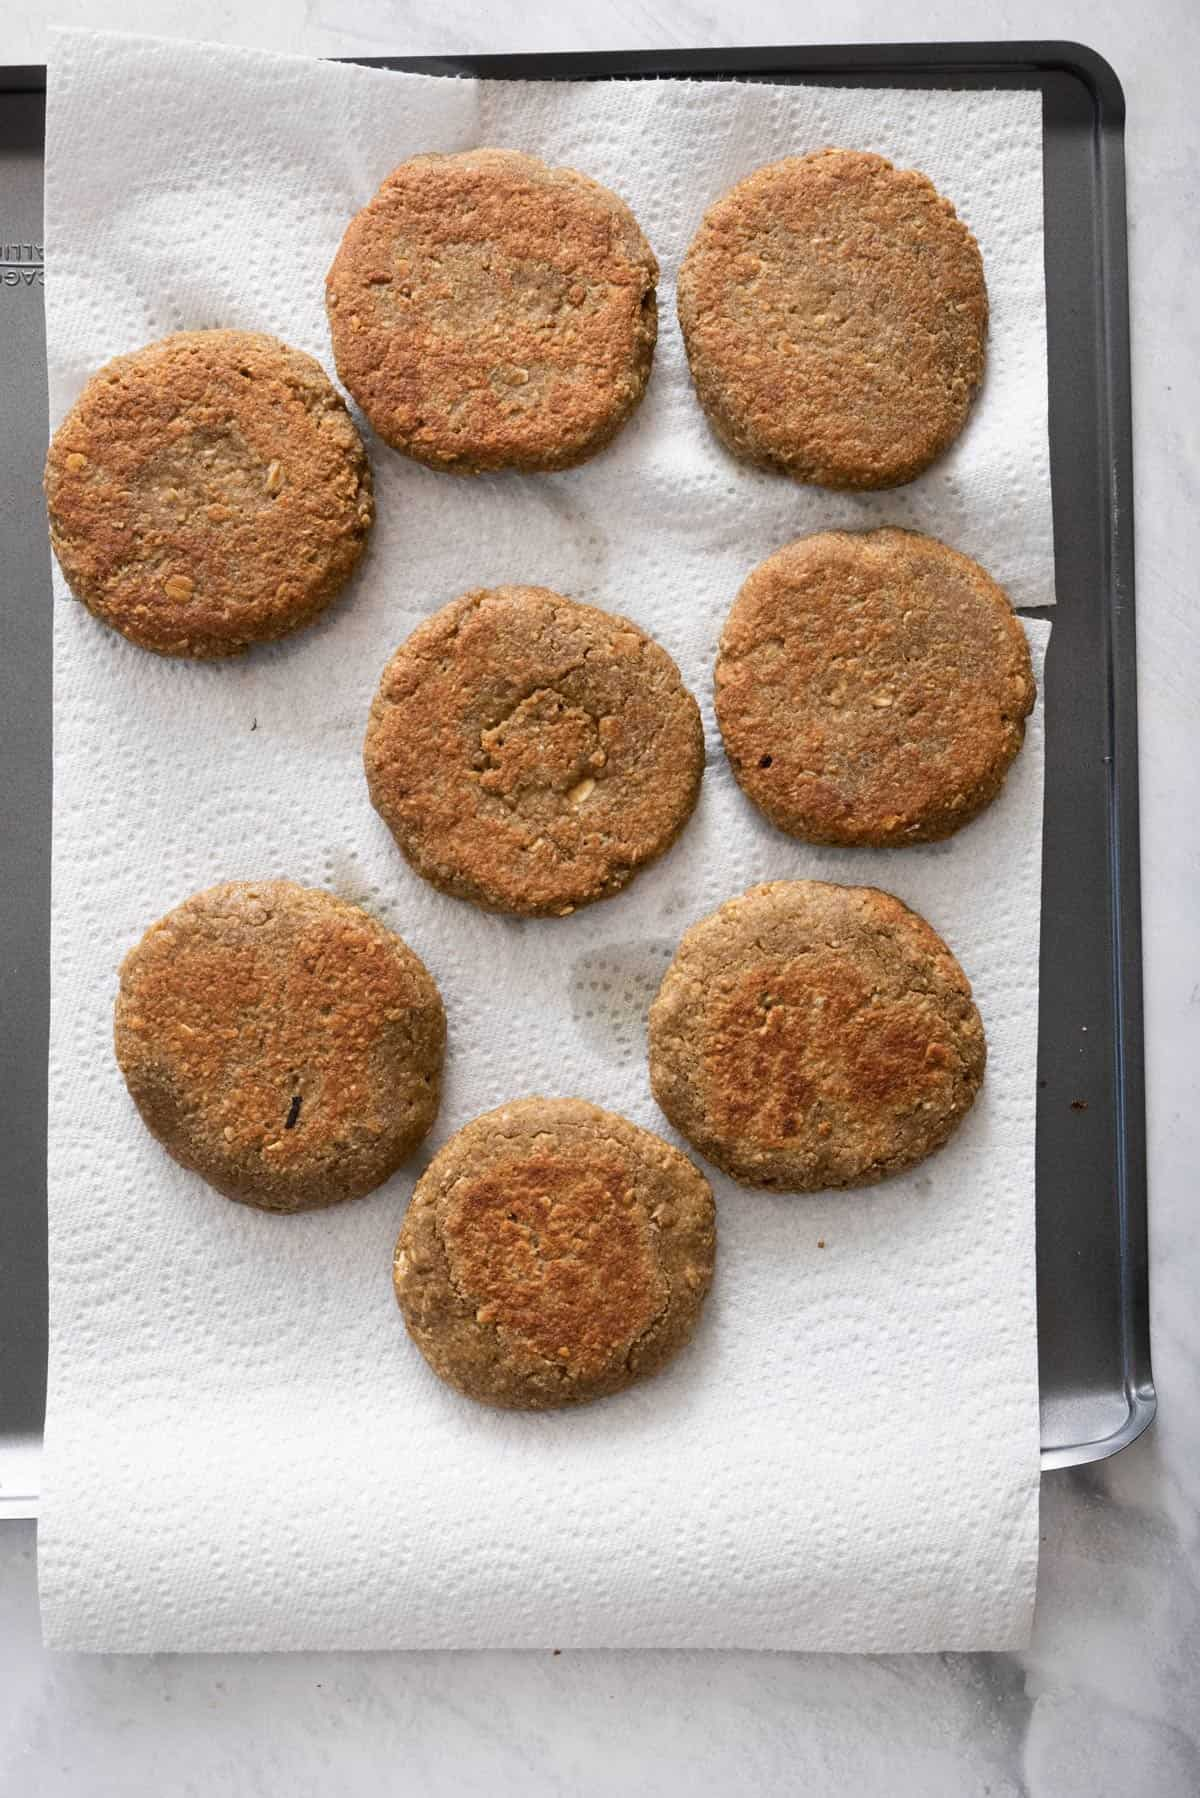 Lentil cakes after frying resting on baking dish lined with paper towel